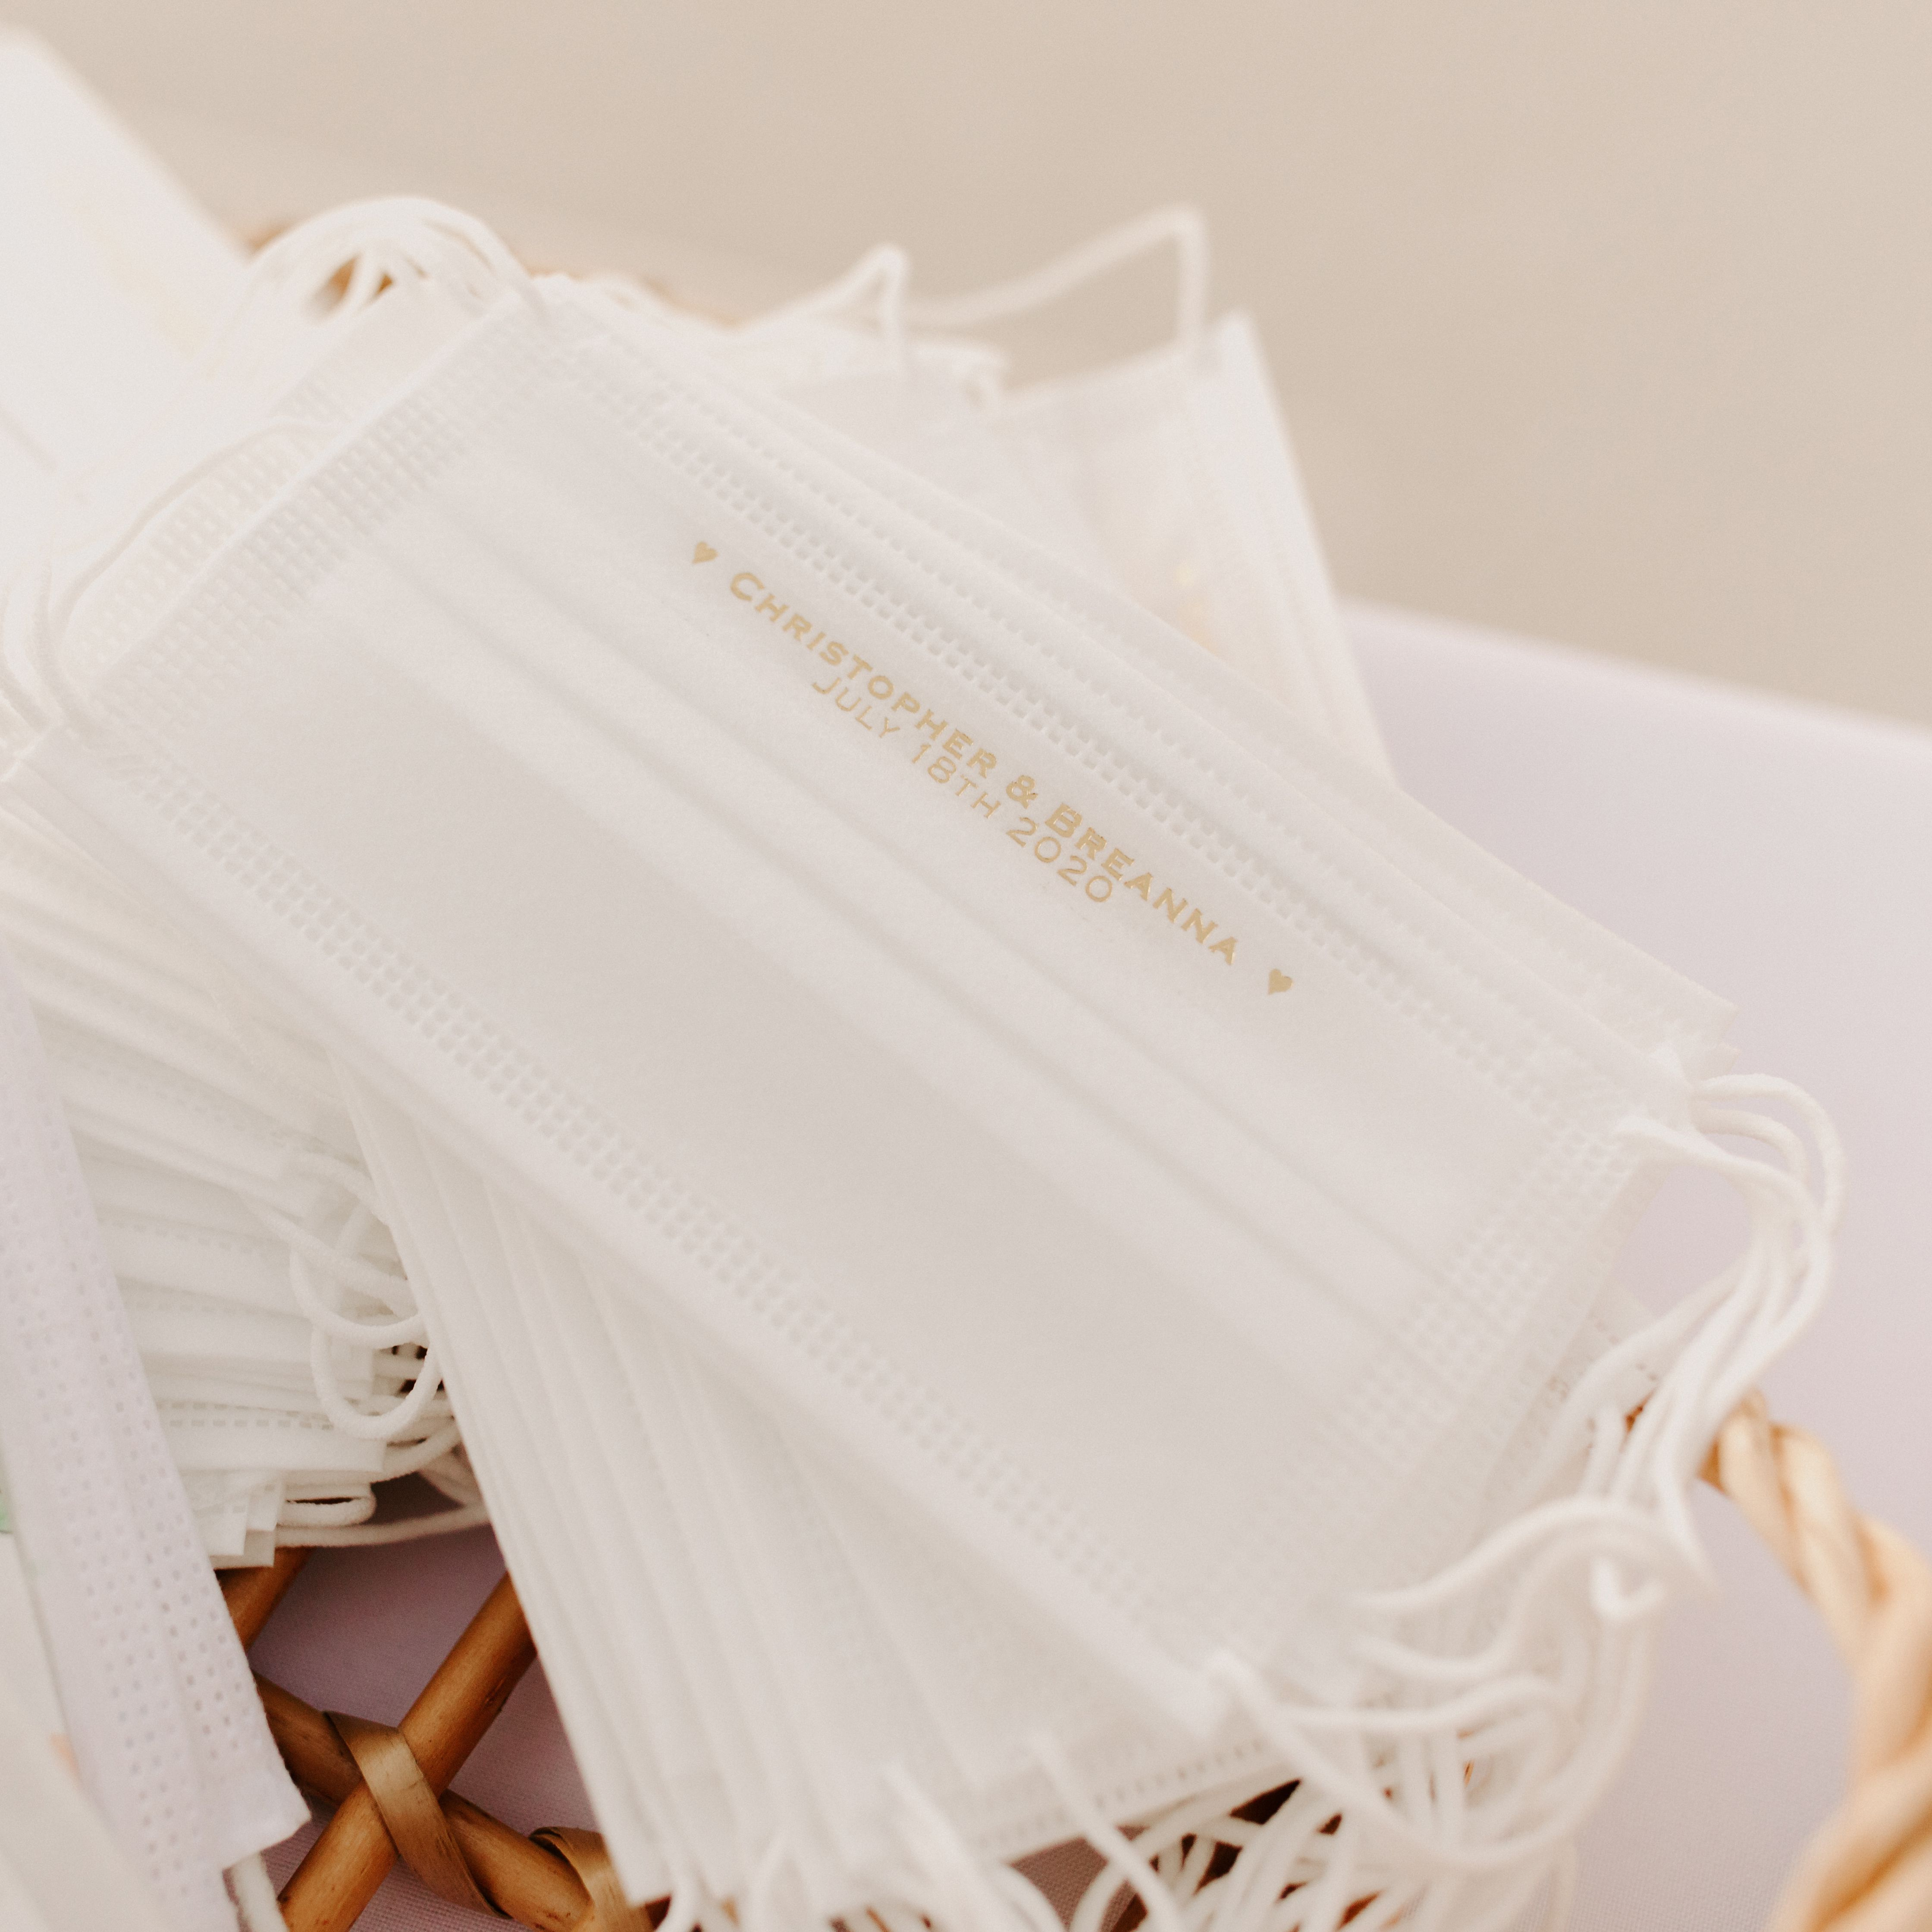 Wedding Bathroom Basket Tips And Essentials, What To Put In Bathroom Baskets